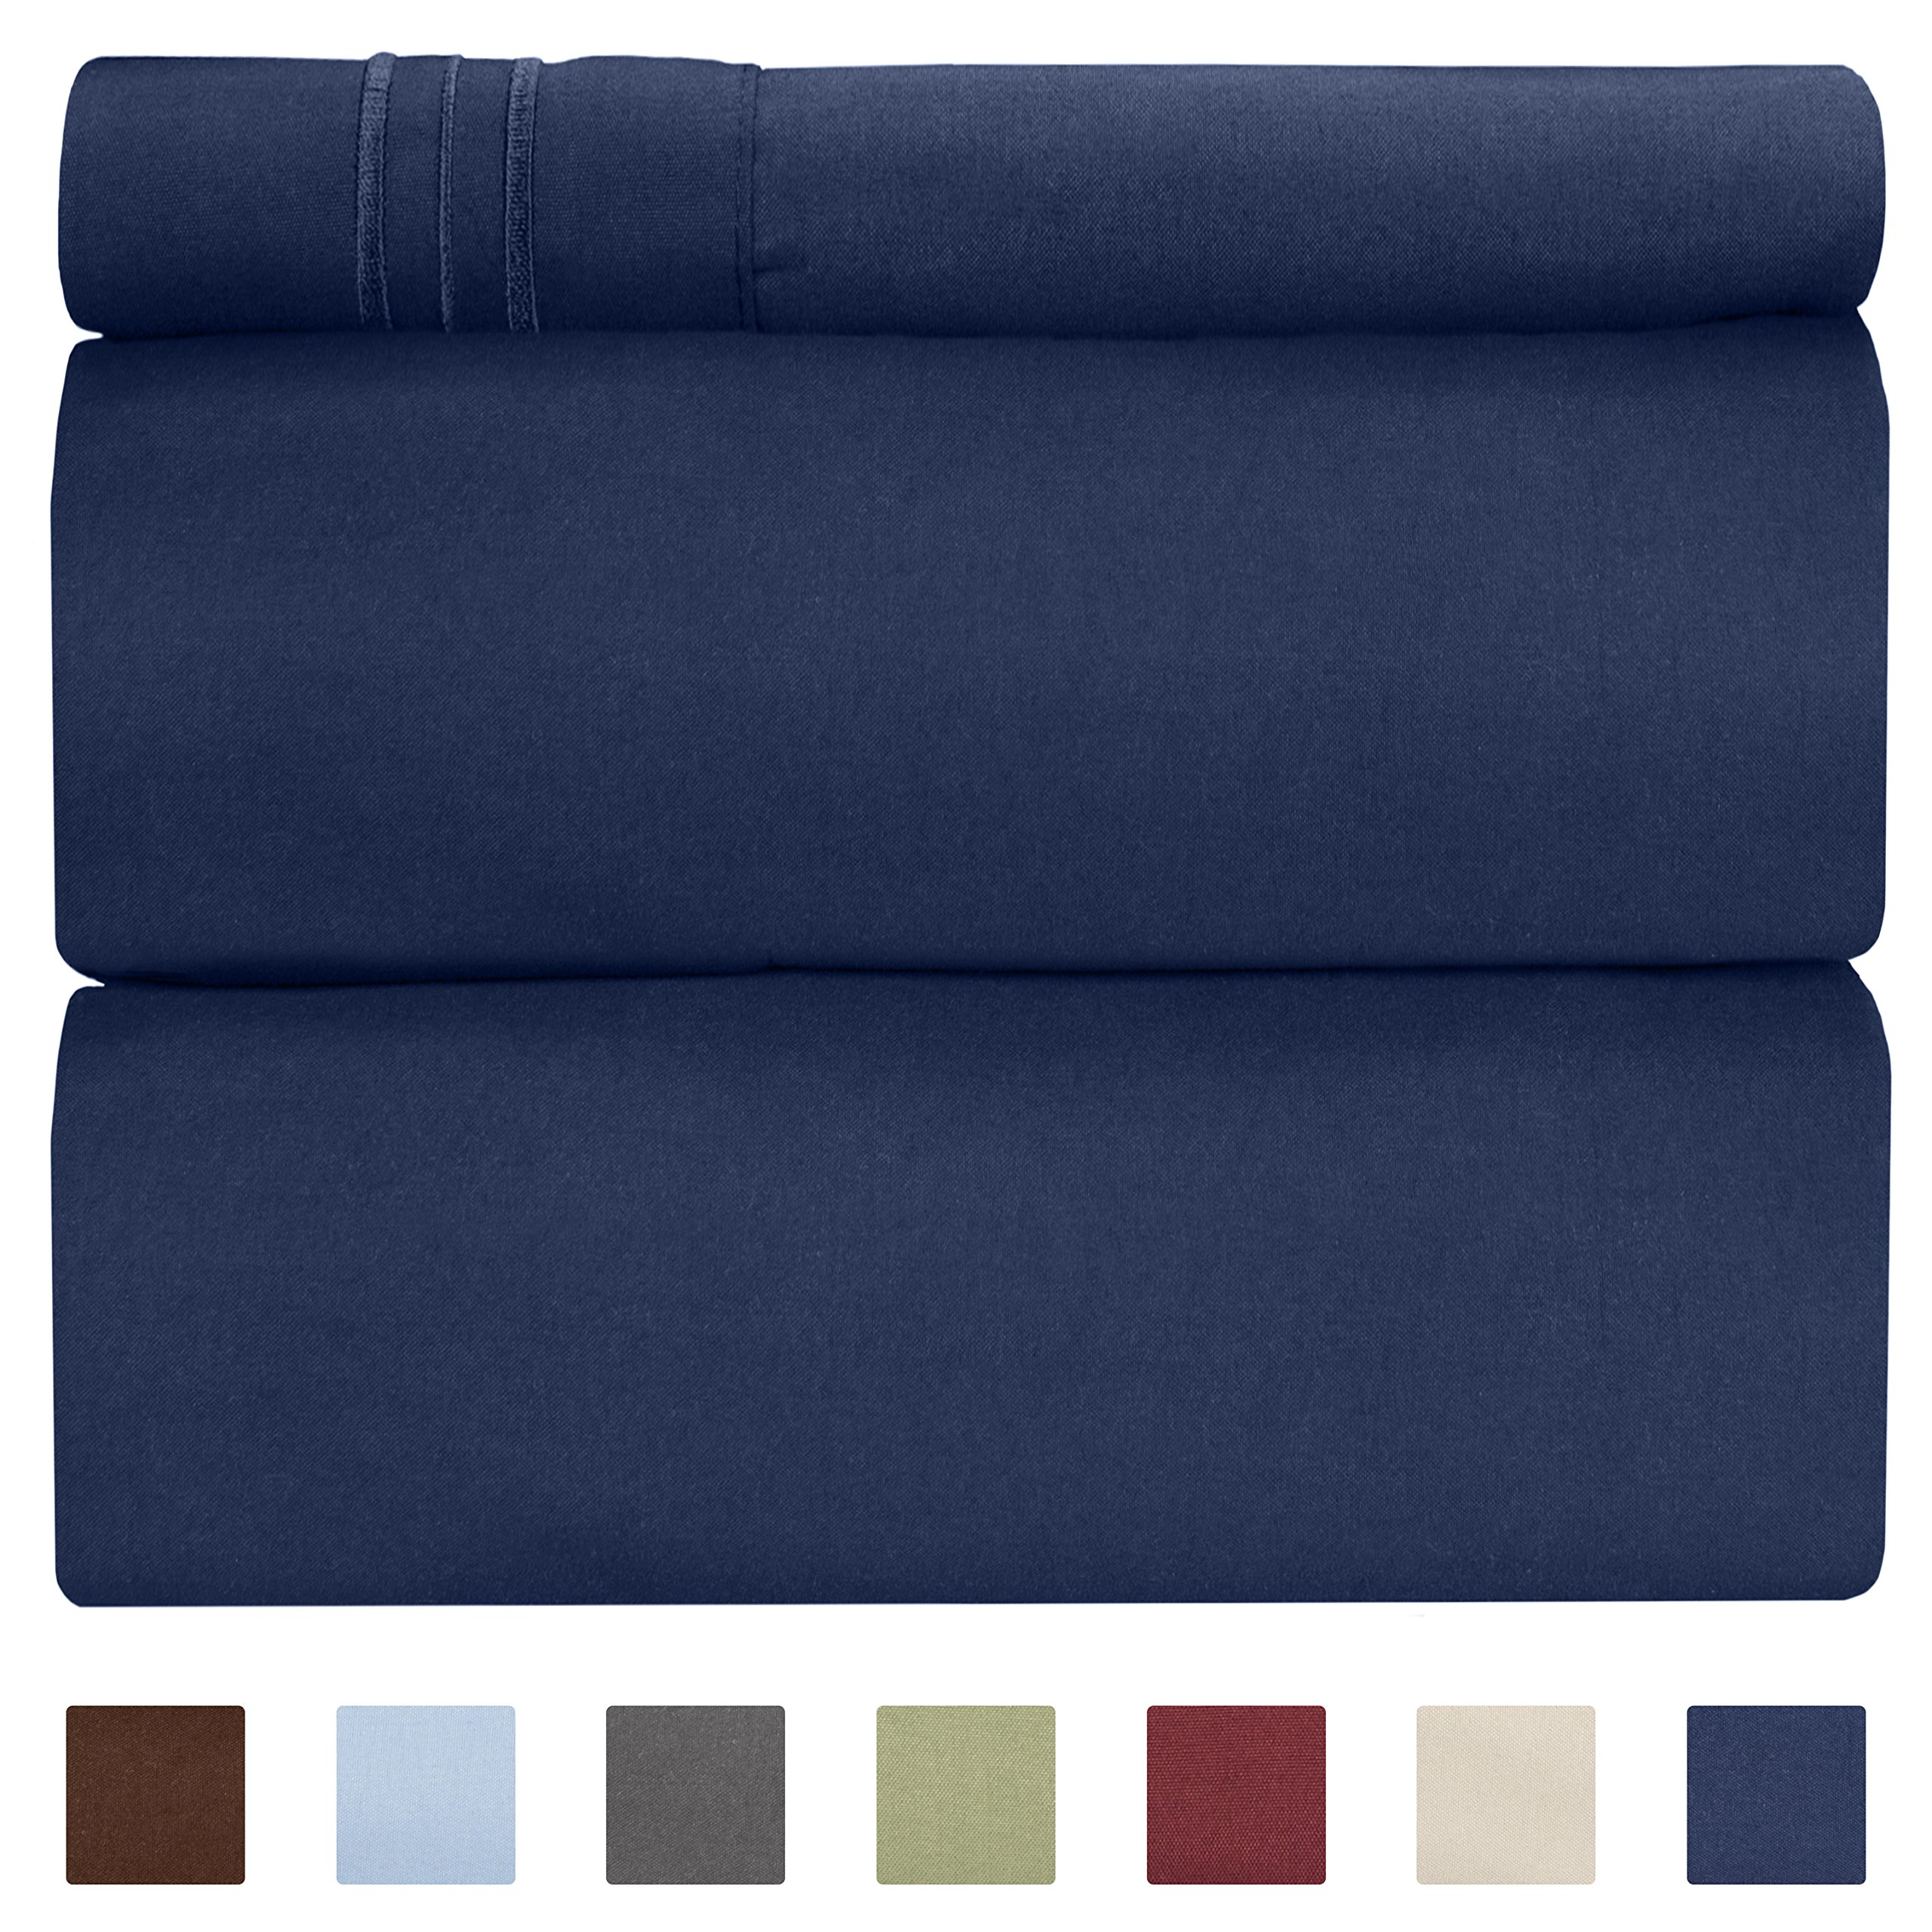 CGK Unlimited Twin XL Sheet Set - 3 Piece - Fits College Dorm Rooms - Hotel Luxury Bed Sheets - Extra Soft - Deep Pockets - Easy Fit - Breathable & Cooling - Navy Blue Bed Sheets - Twins